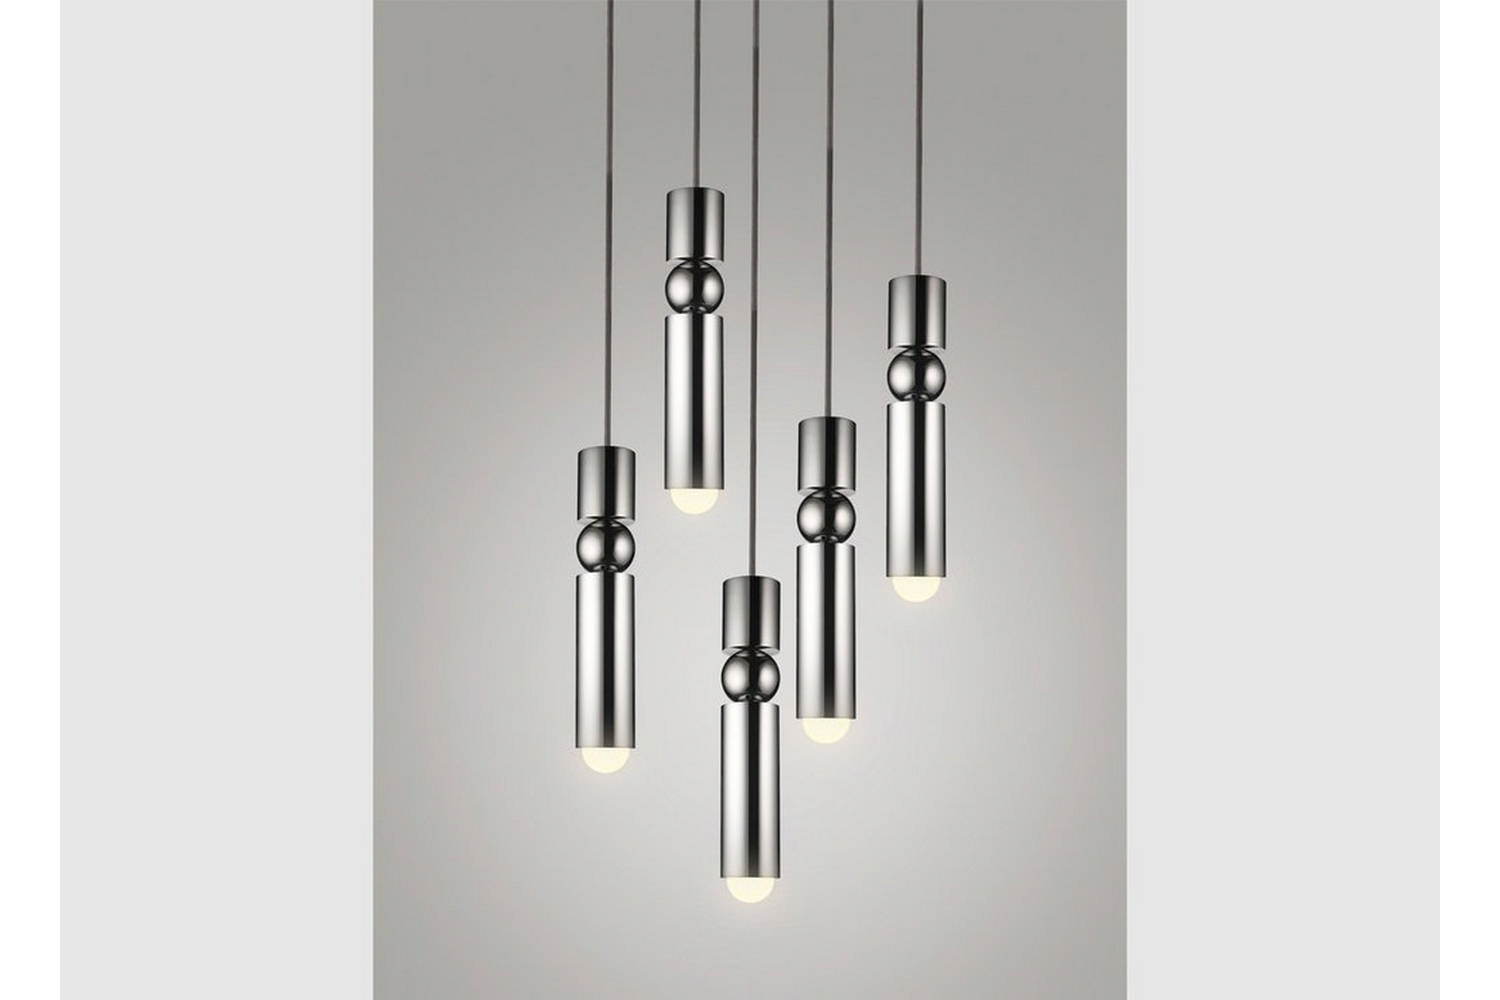 Fulcrum Chandelier 5 Piece - Polished Chrome by Lee Broom